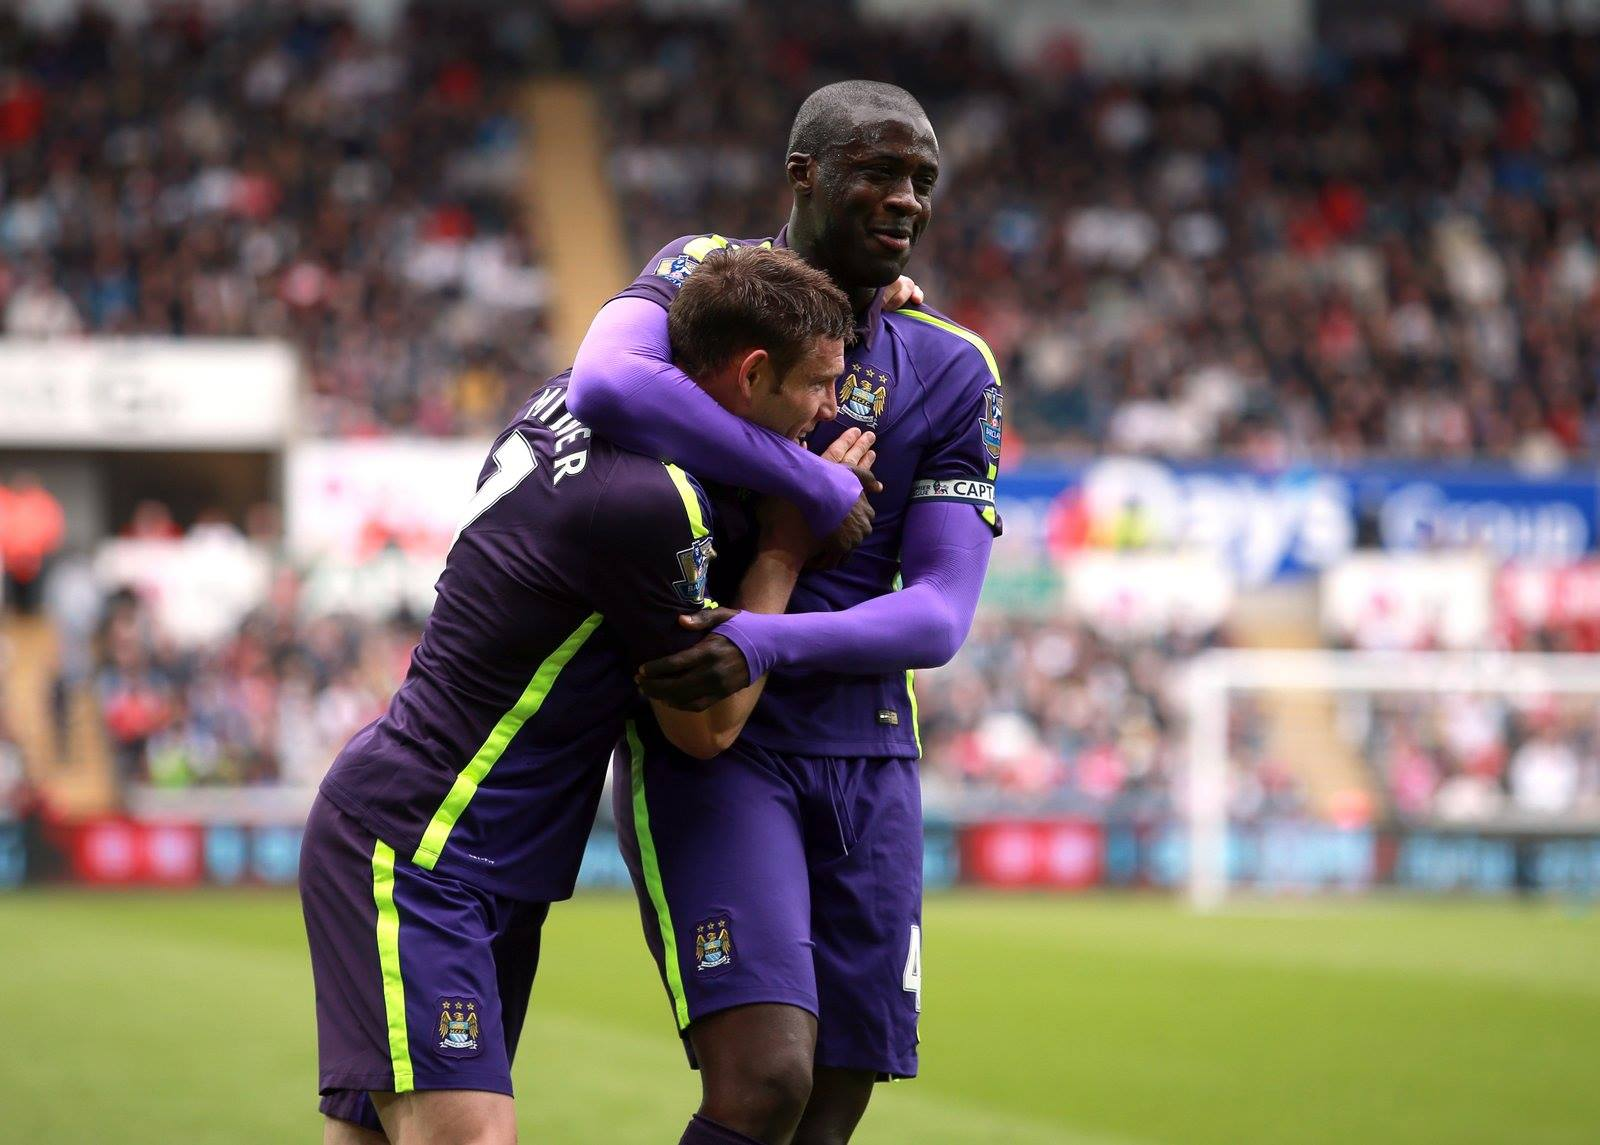 Double celebration - James and Yaya celebrate their City goals in a well deserved 4-2 win at Swansea. Courtesy@MCFC